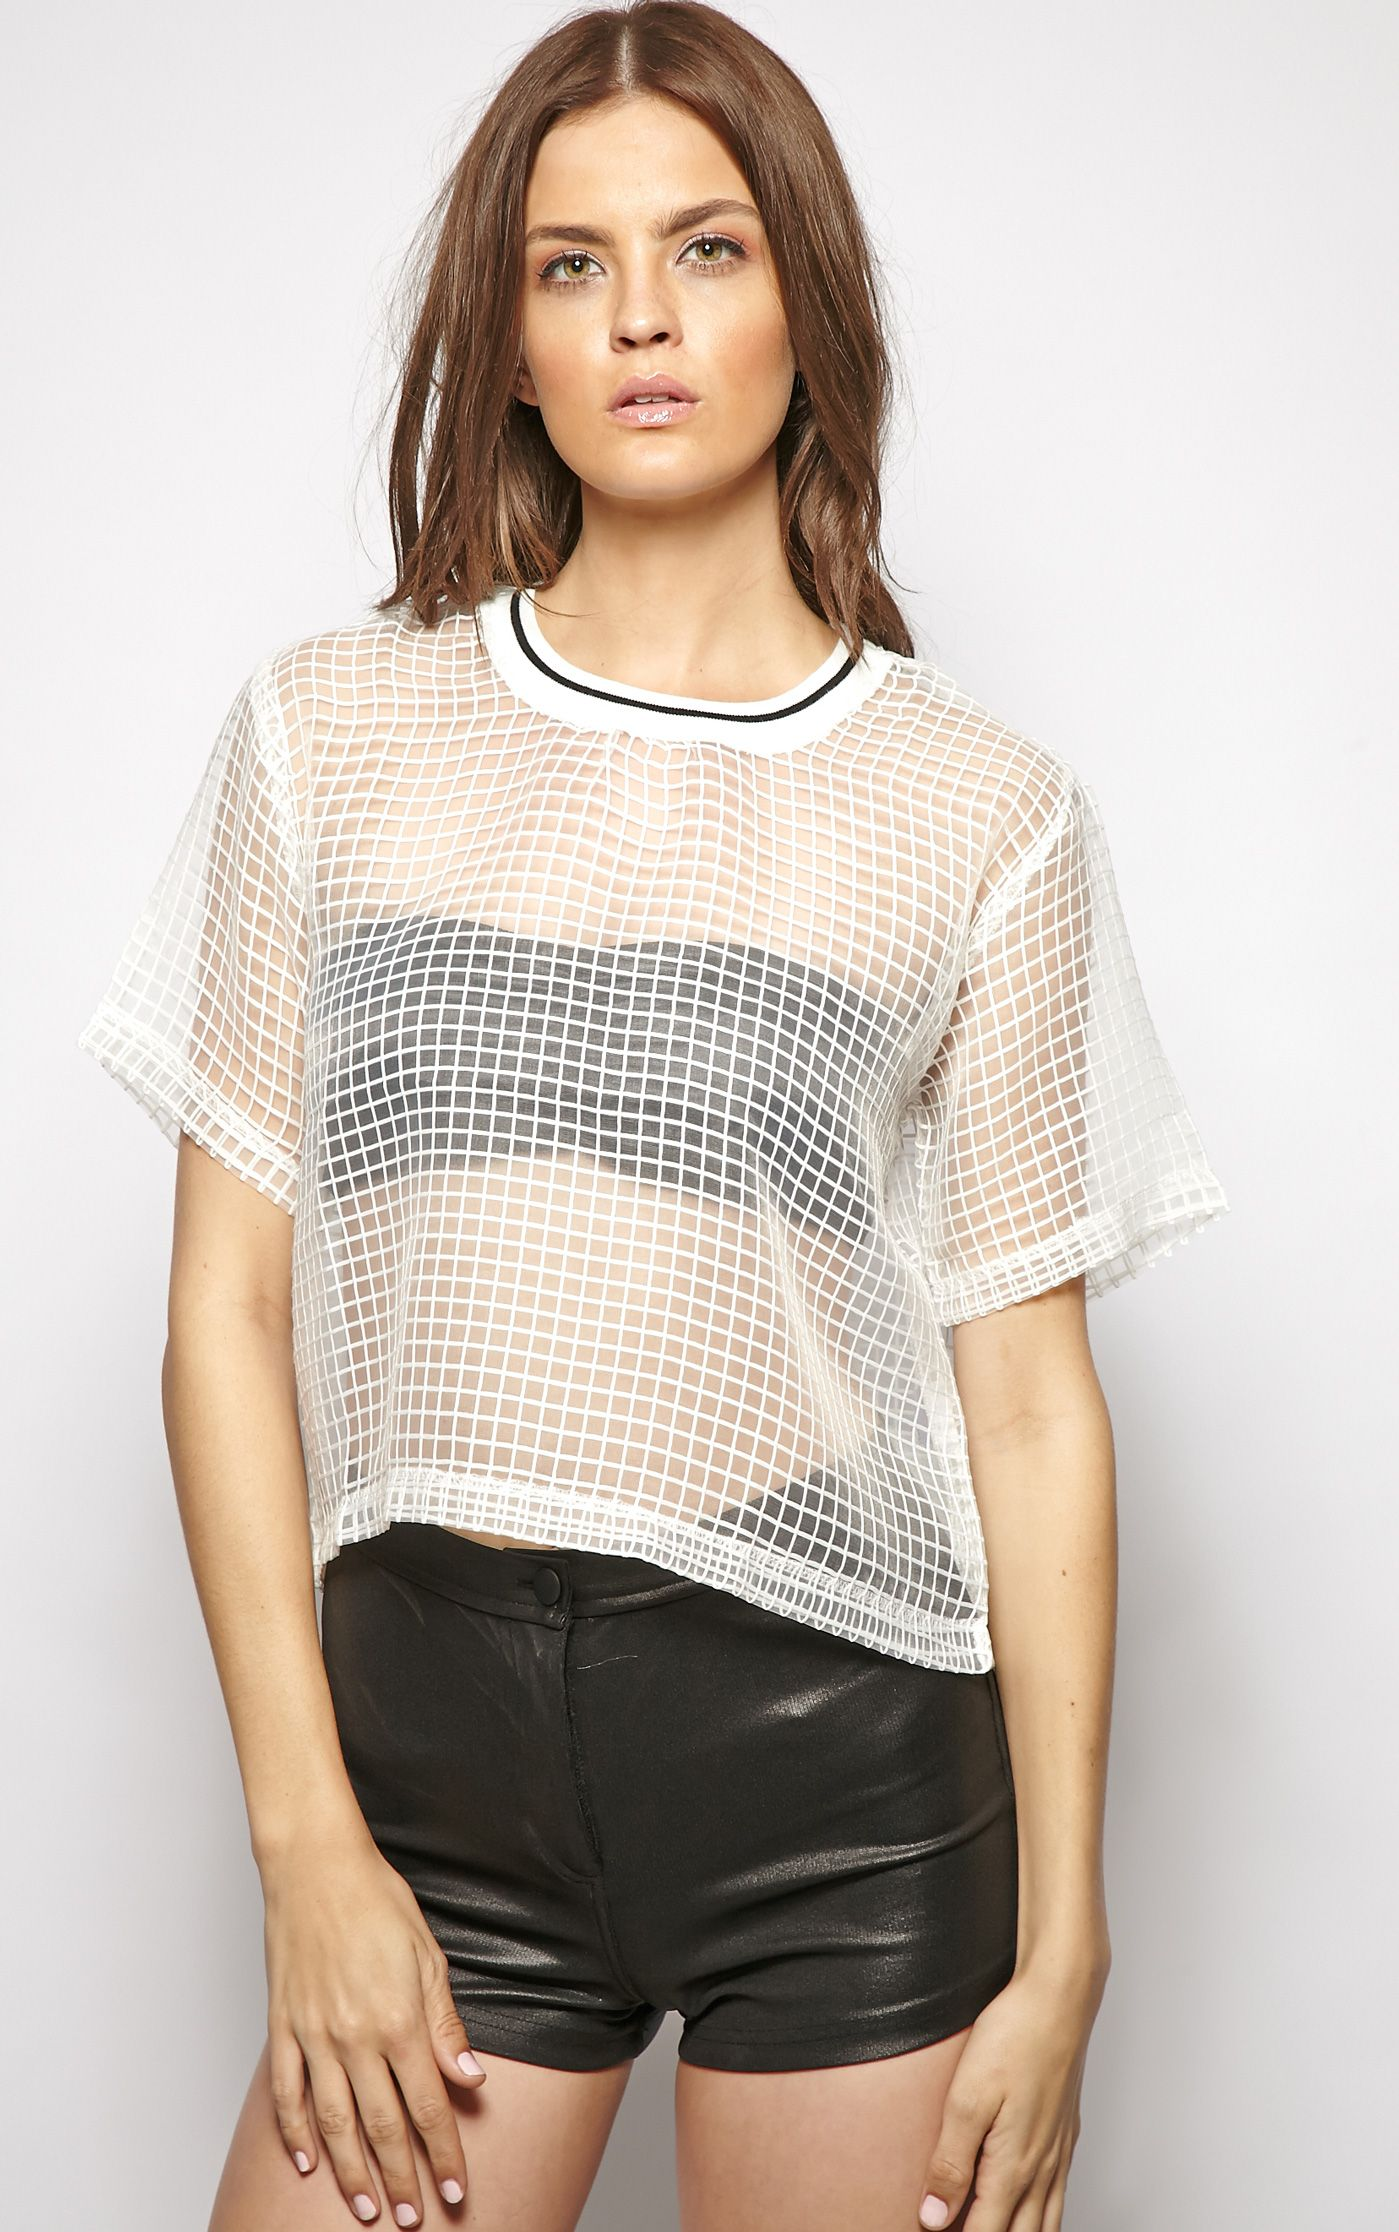 Christian White Square Sheer Crop Top  1